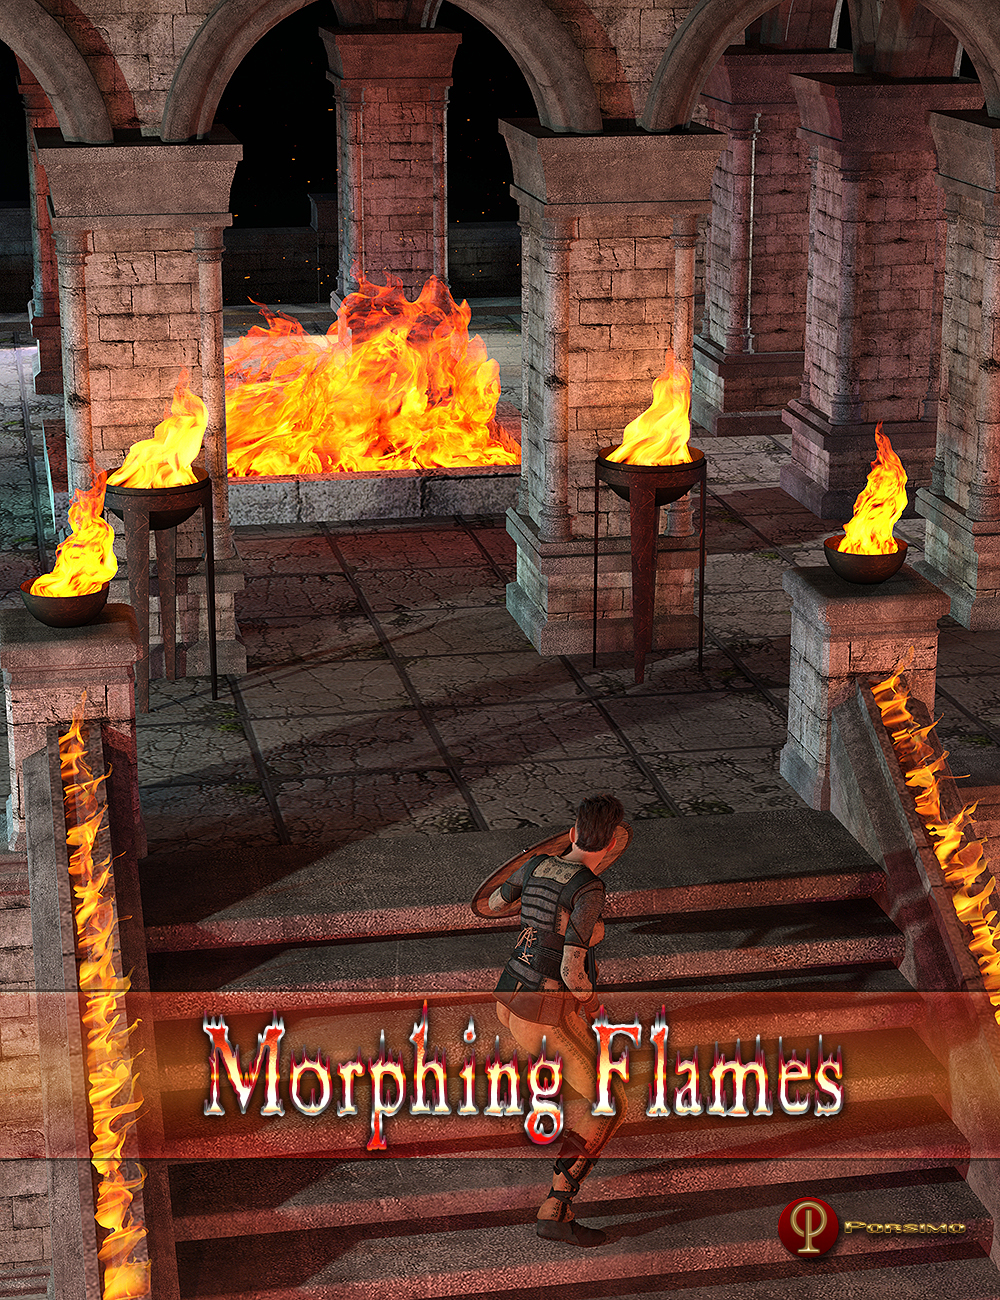 Morphing Flames by: Porsimo, 3D Models by Daz 3D